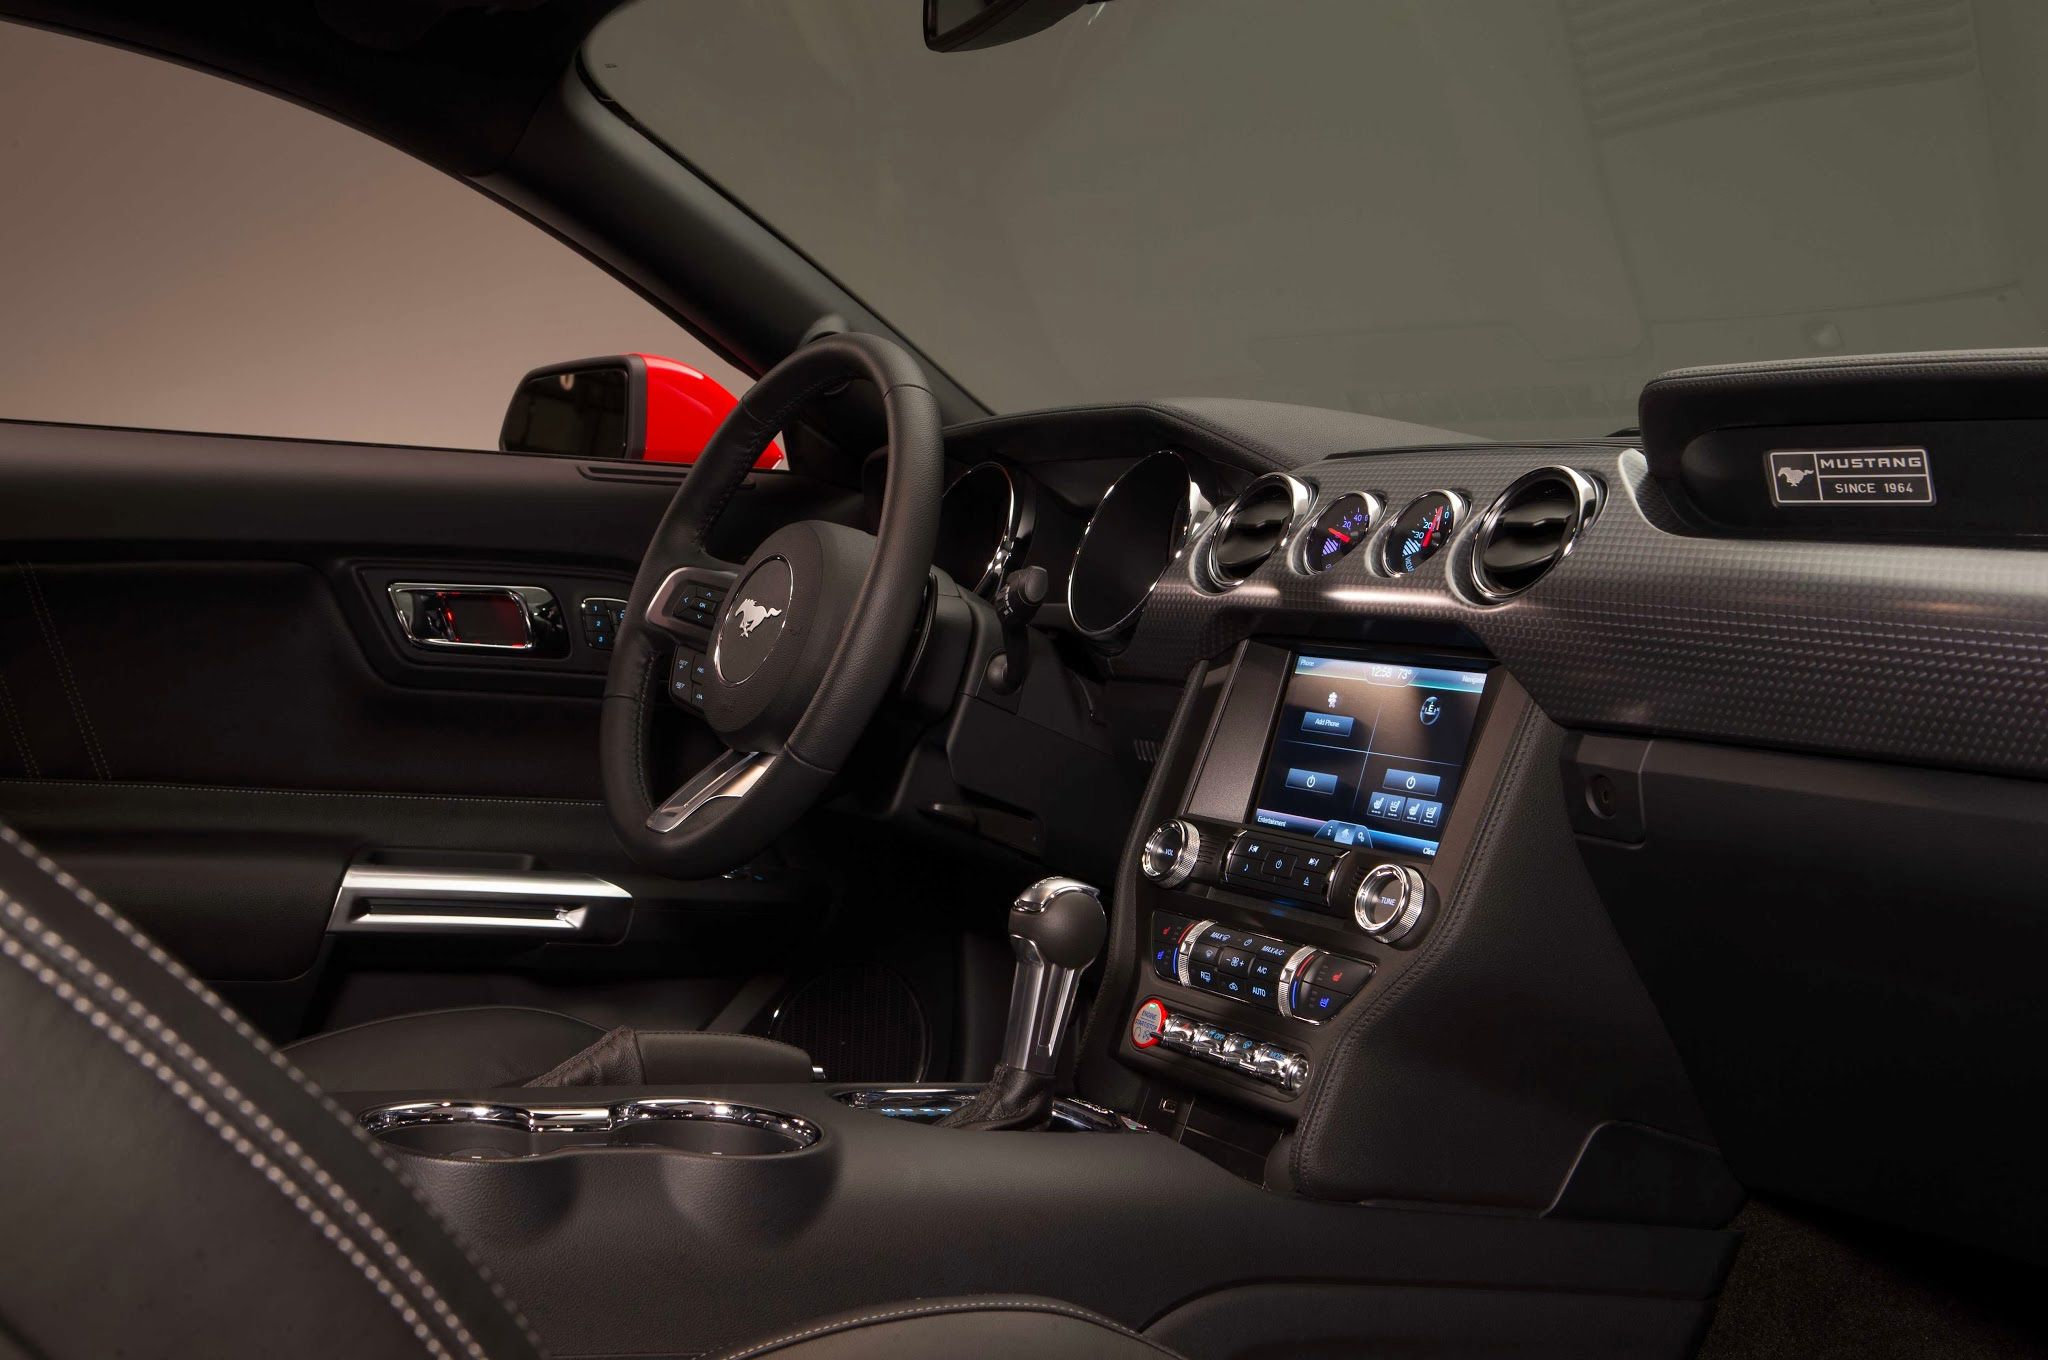 2015 ford mustang 50 red interior from passenger side